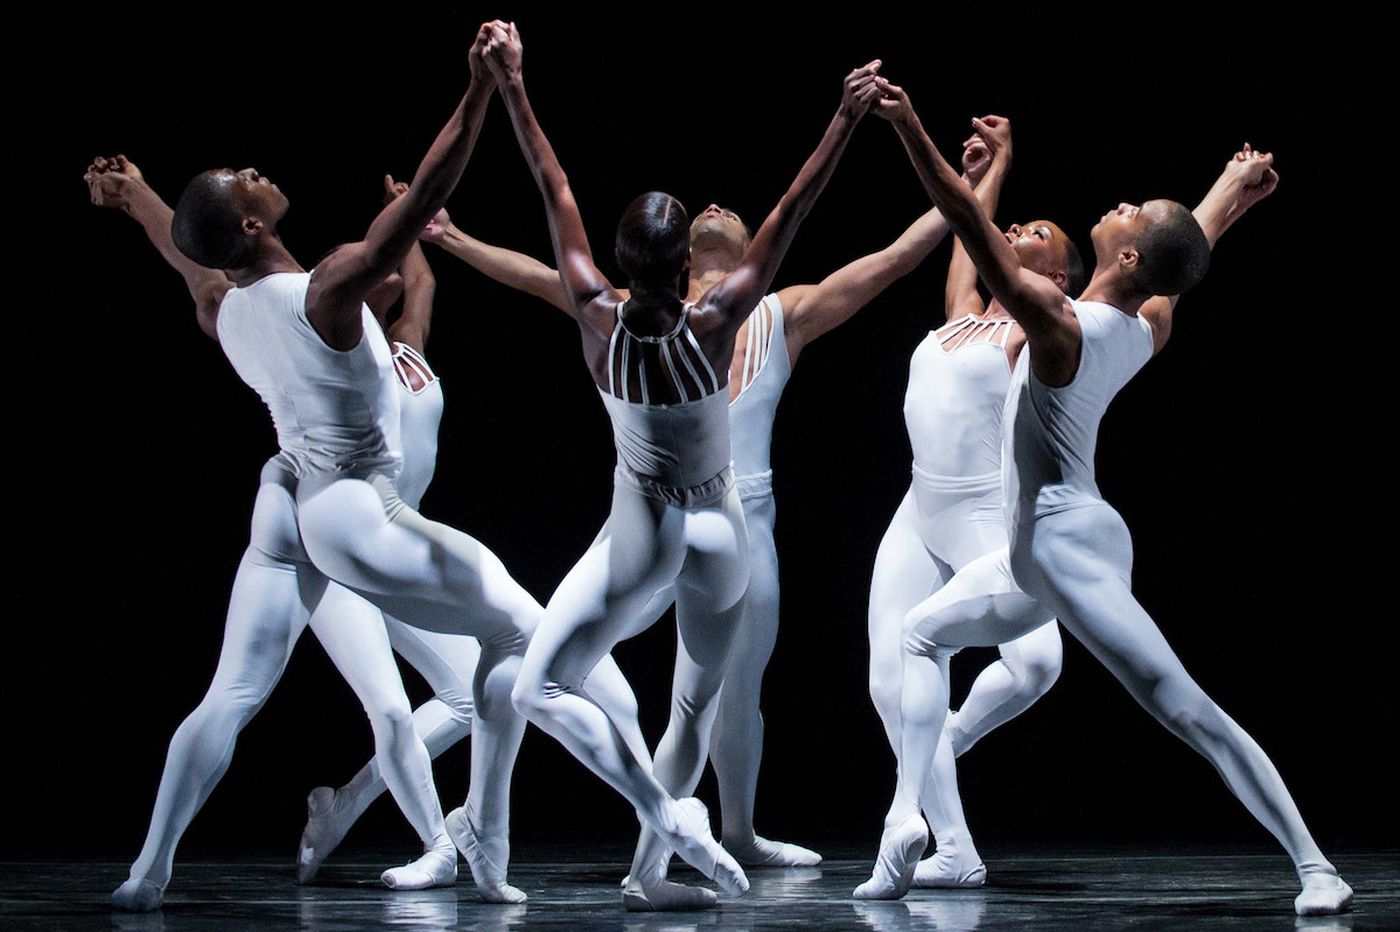 Dance Theater of Harlem at the Annenberg: Technique, charisma, aplomb